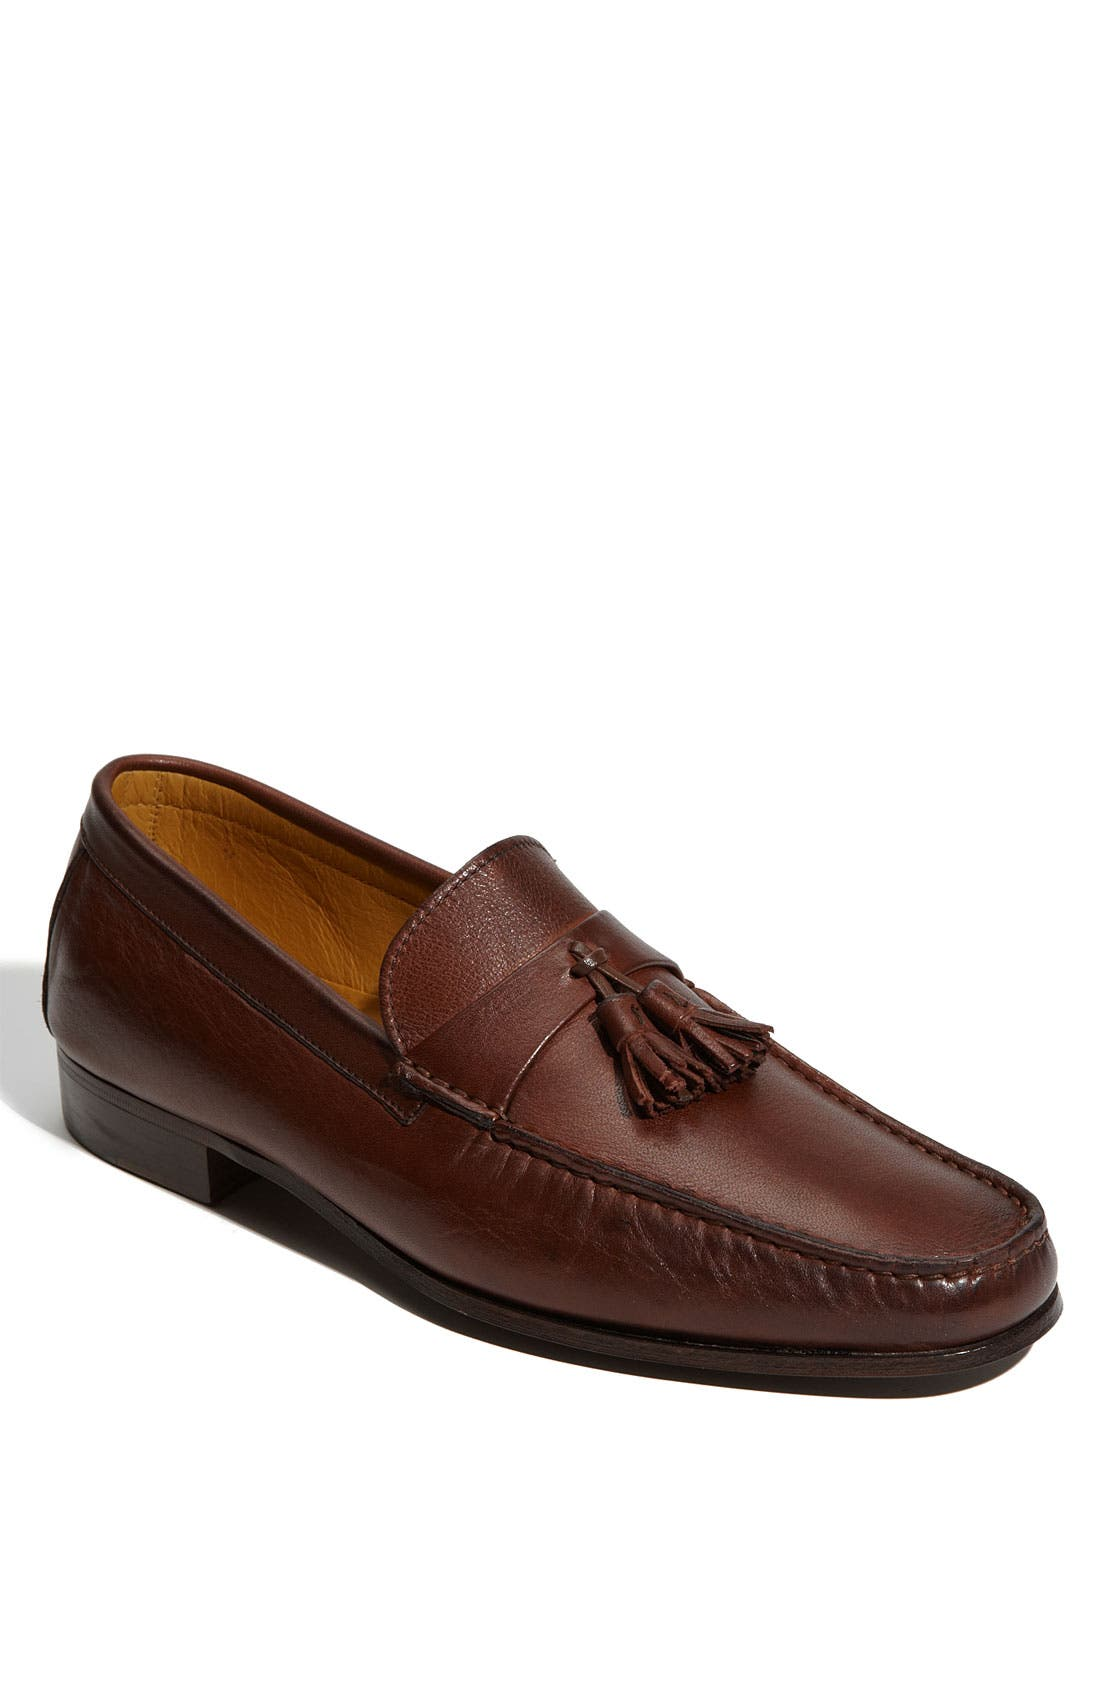 Main Image - Nordstrom 'Alex' Loafer